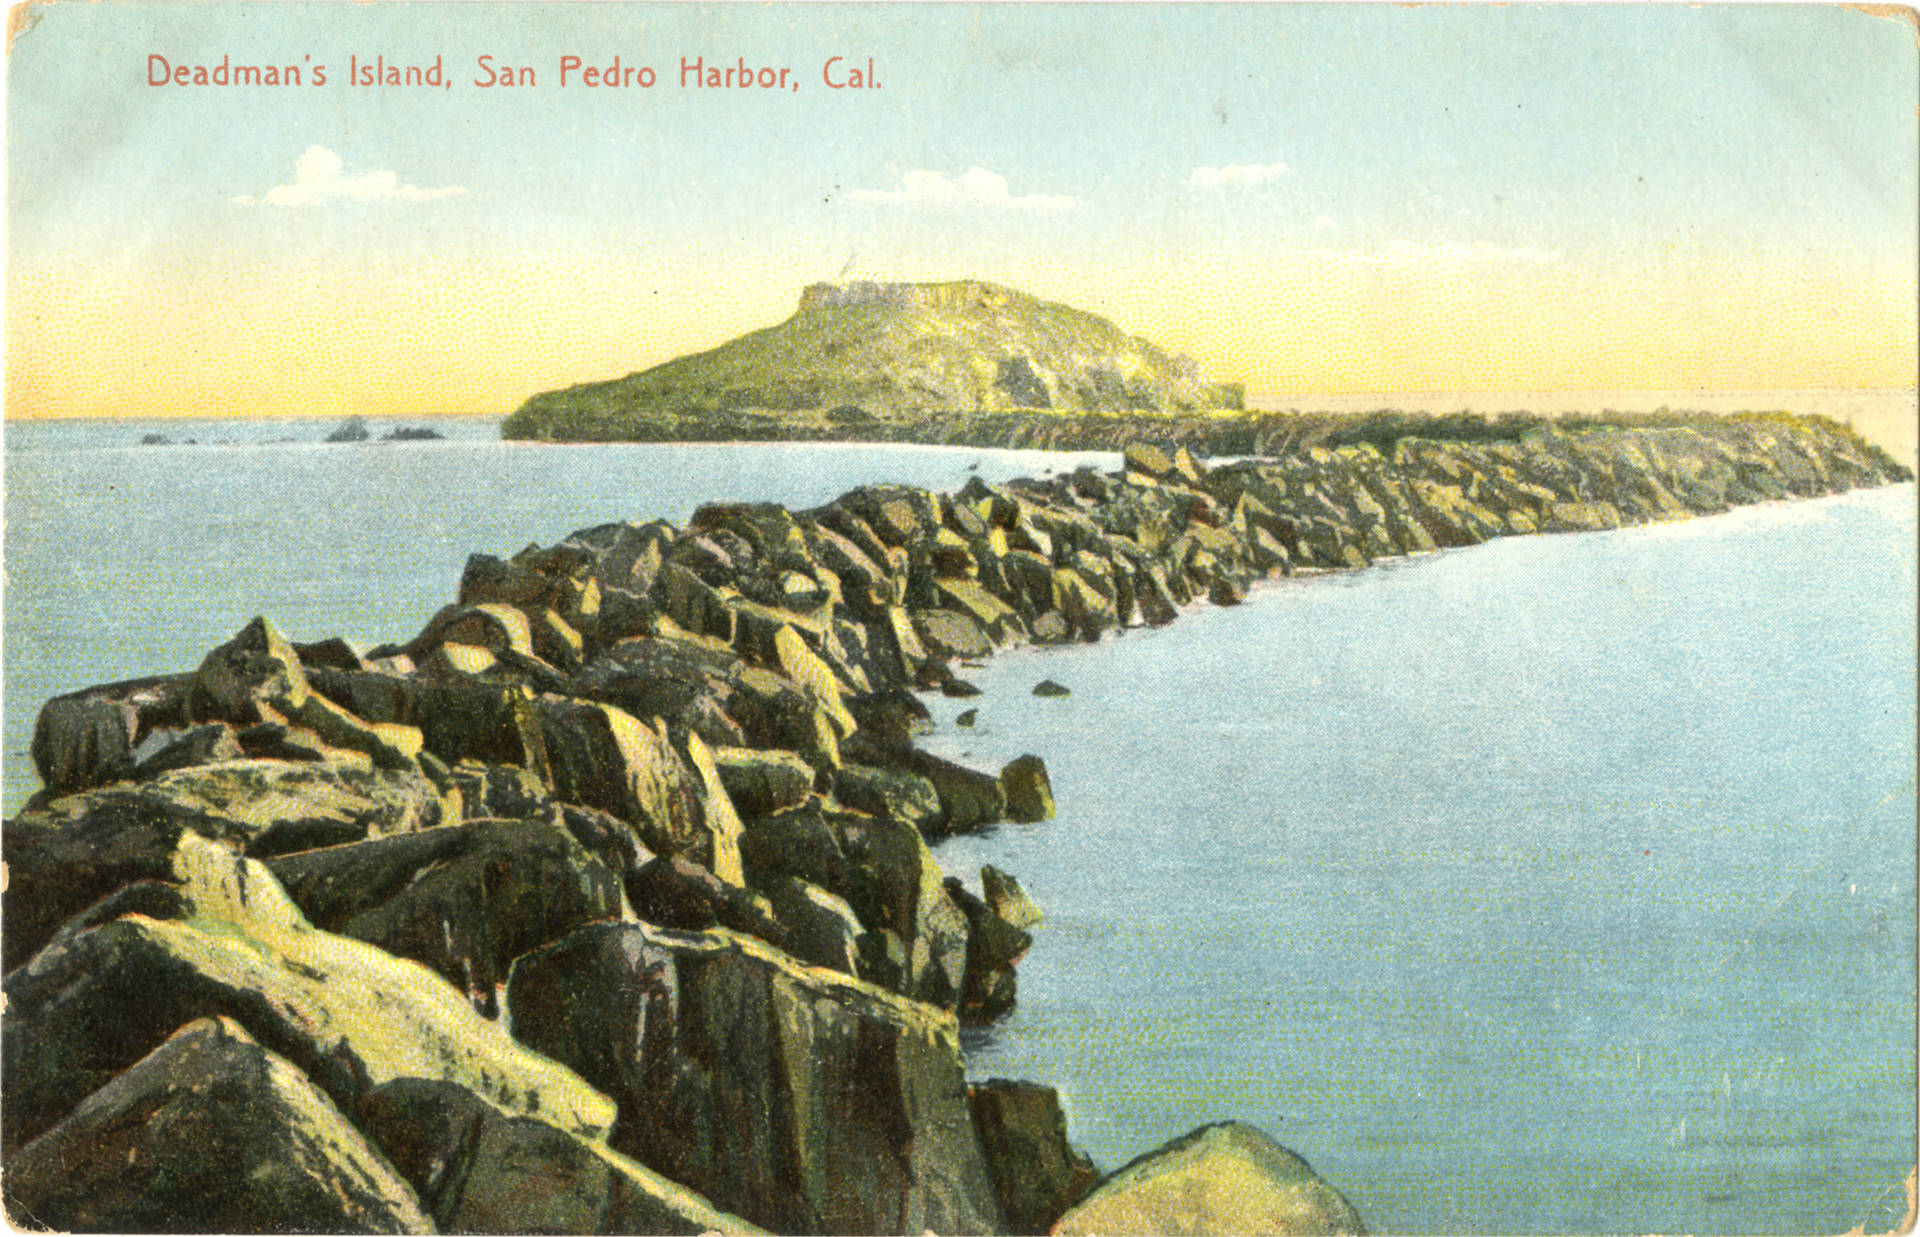 As one of the San Pedro Bay's most conspicuous features, Dead Man's Island became something of a landmark. Postcard by M. Reider, courtesy of the James H. Osborne Photograph Collection, CSUDH Archives.